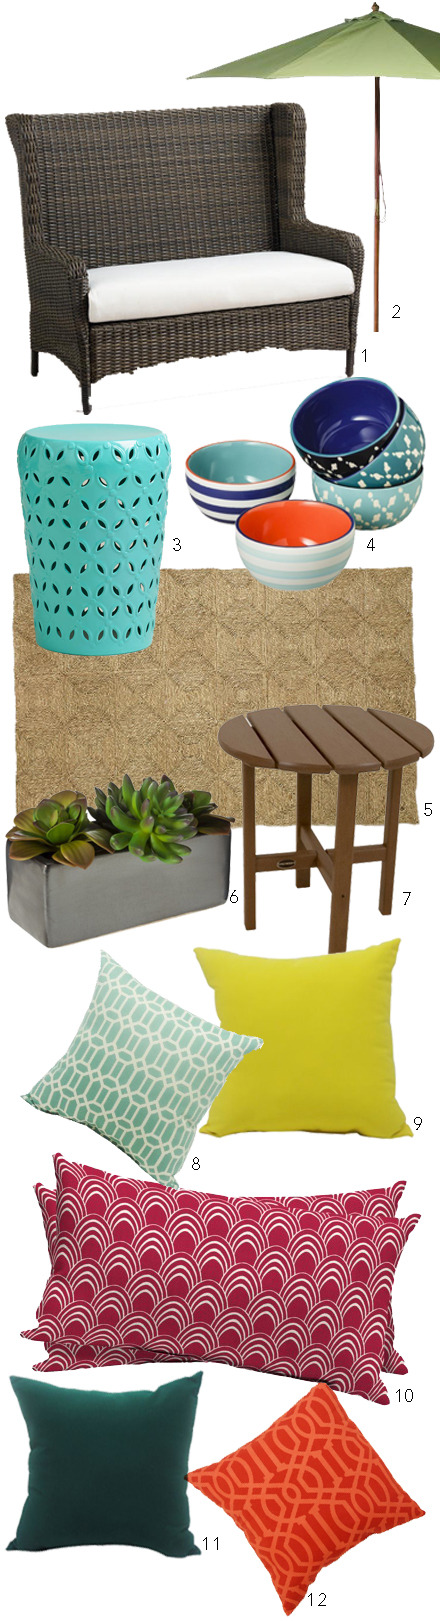 Styling a patio on a budget